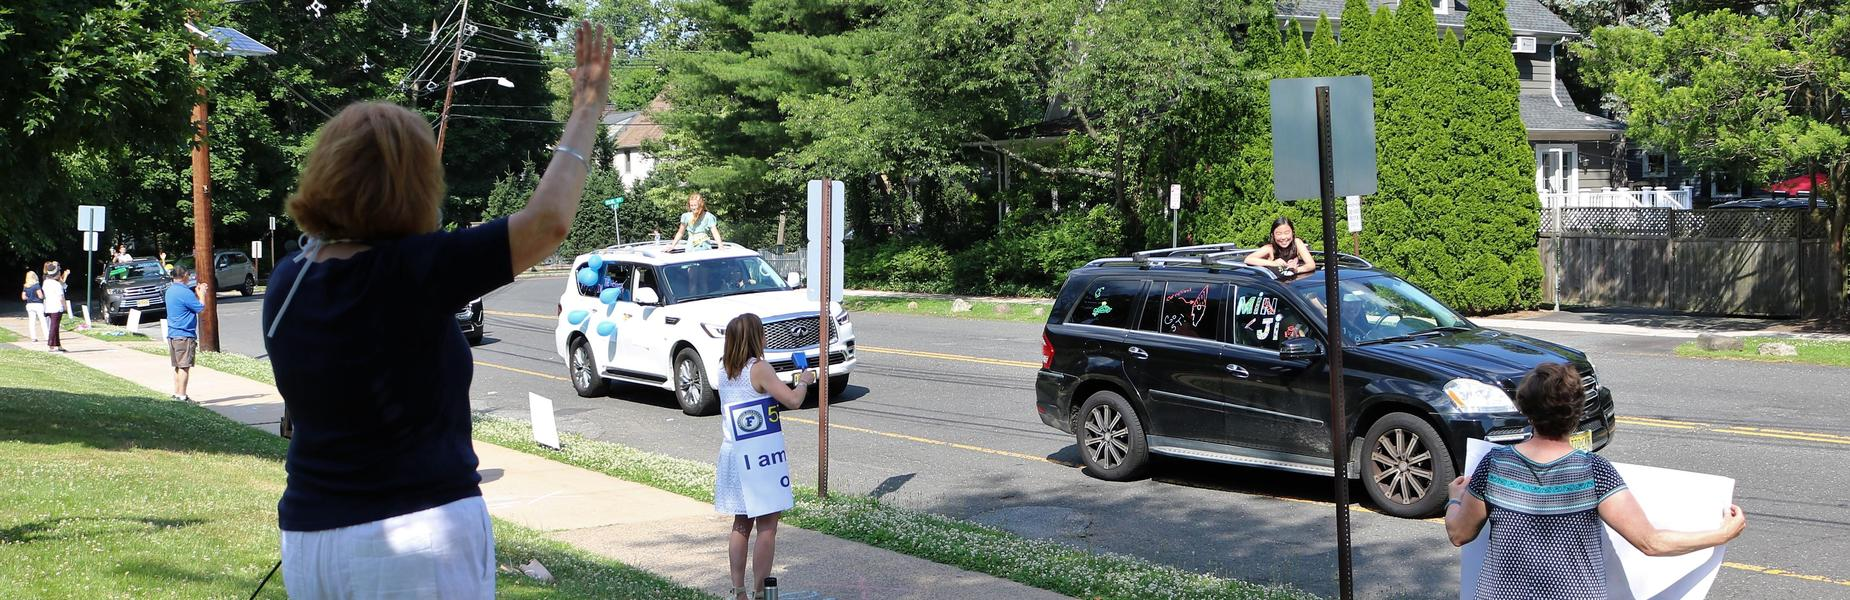 Photo of Franklin principal and staff waving to 5th graders during Grade 5 Clap Out Car Parade.